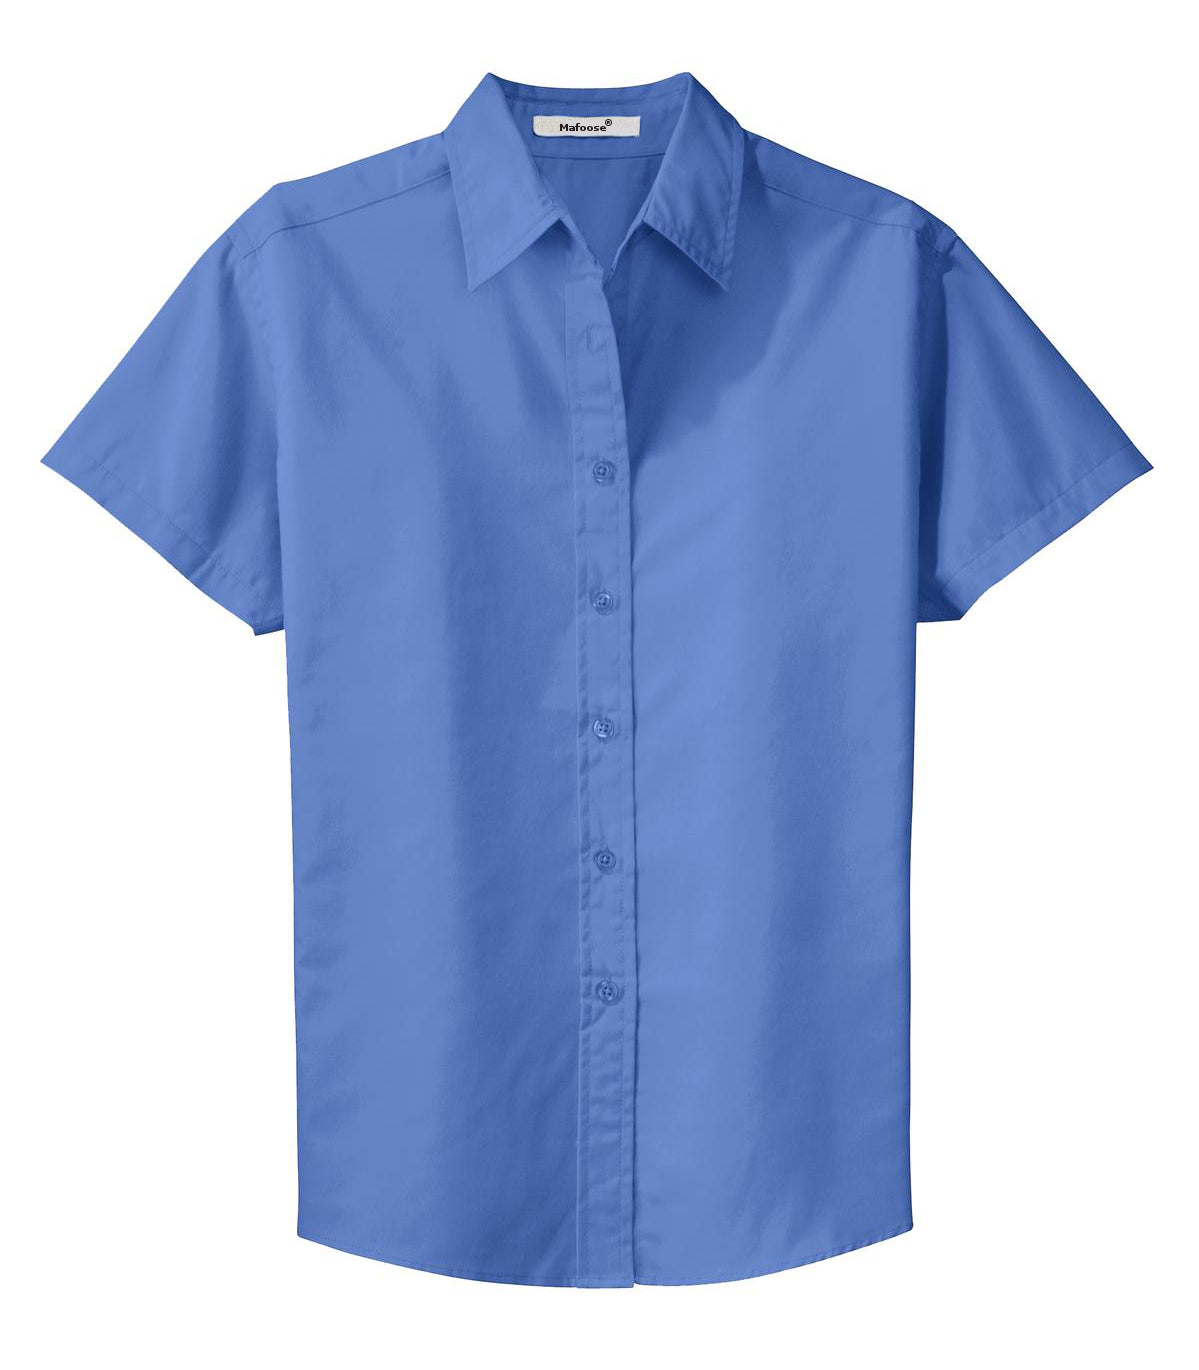 Mafoose Women's Comfortable Short Sleeve Easy Care Shirt Ultramarine Blue-Front